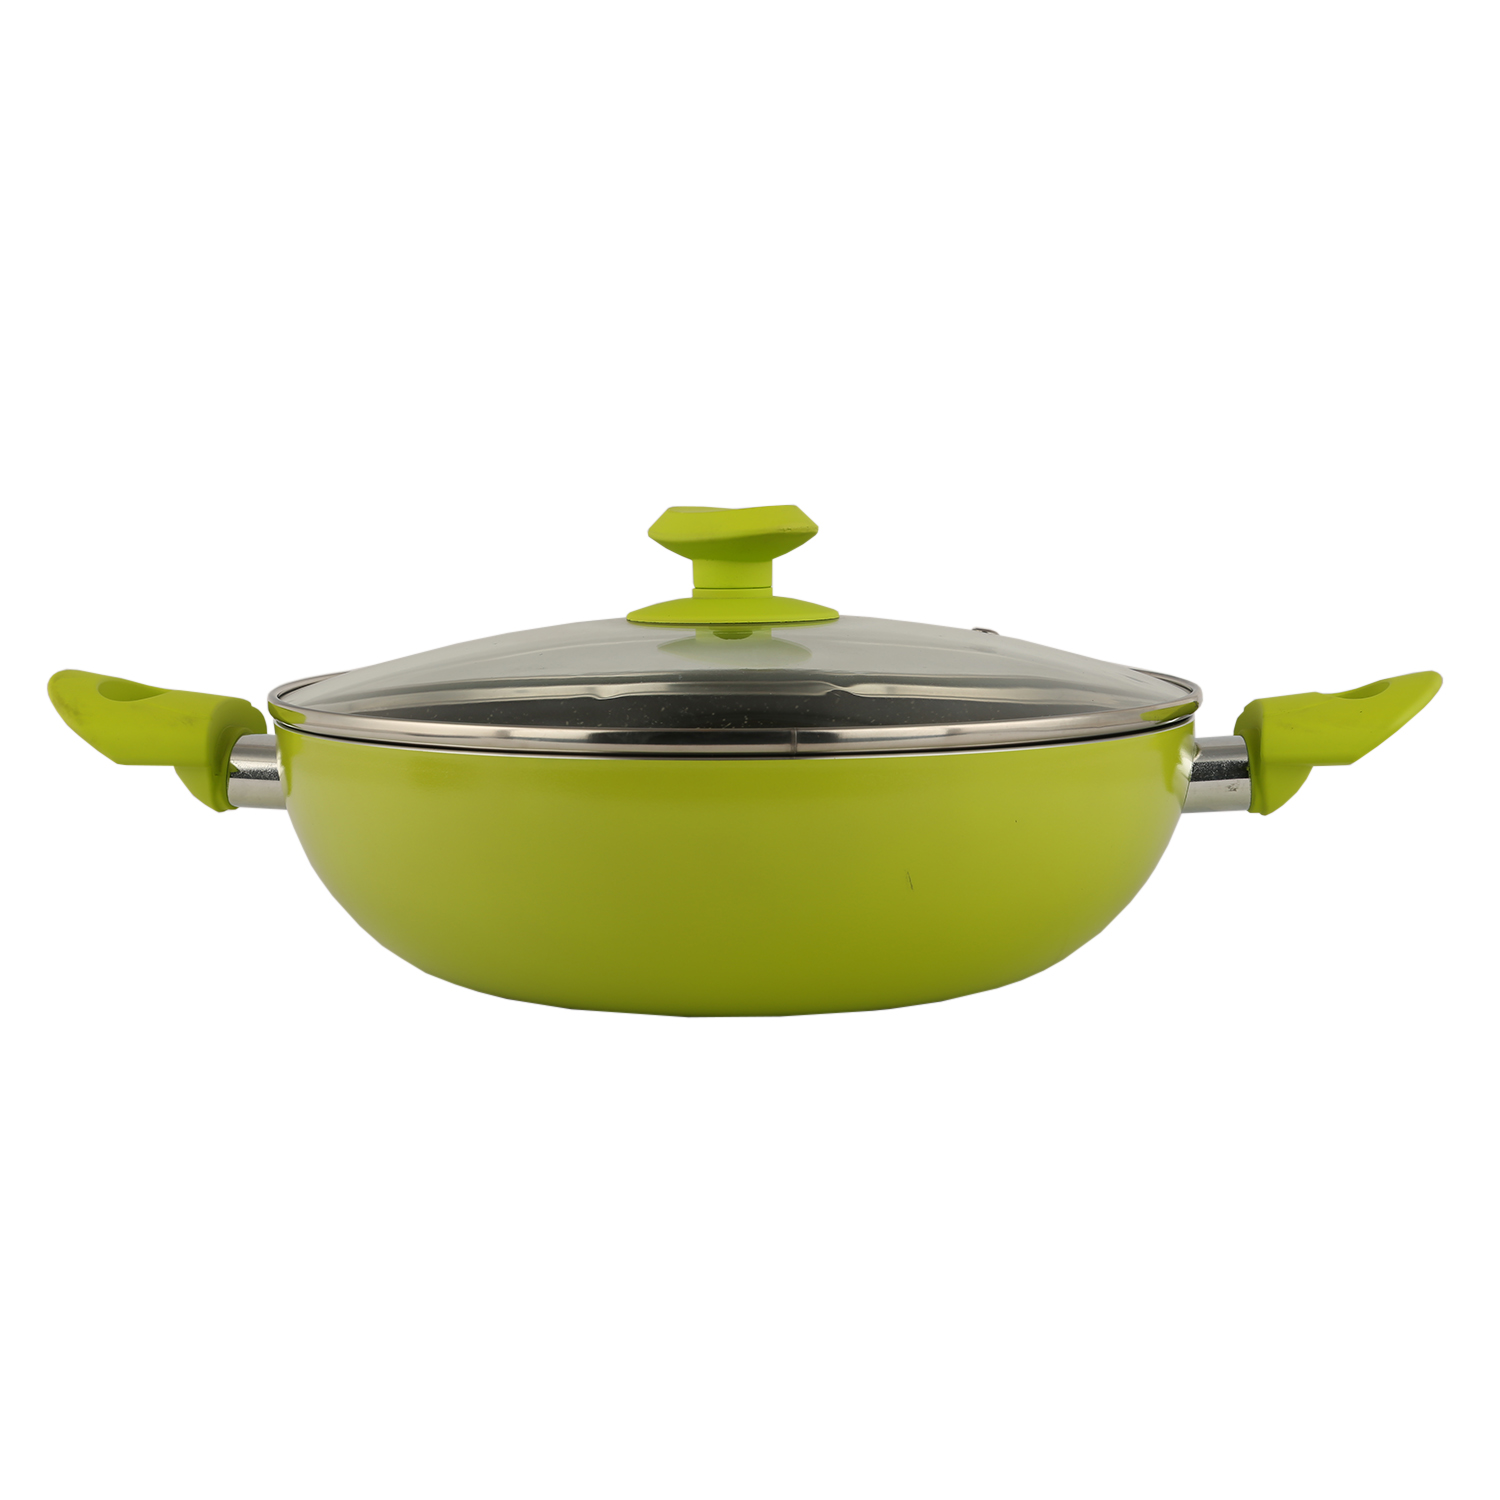 Granite Kadai 28cm with Lid Lime Pressed Alluminium Kadhai & Wok in Lime Colour by Living Essence